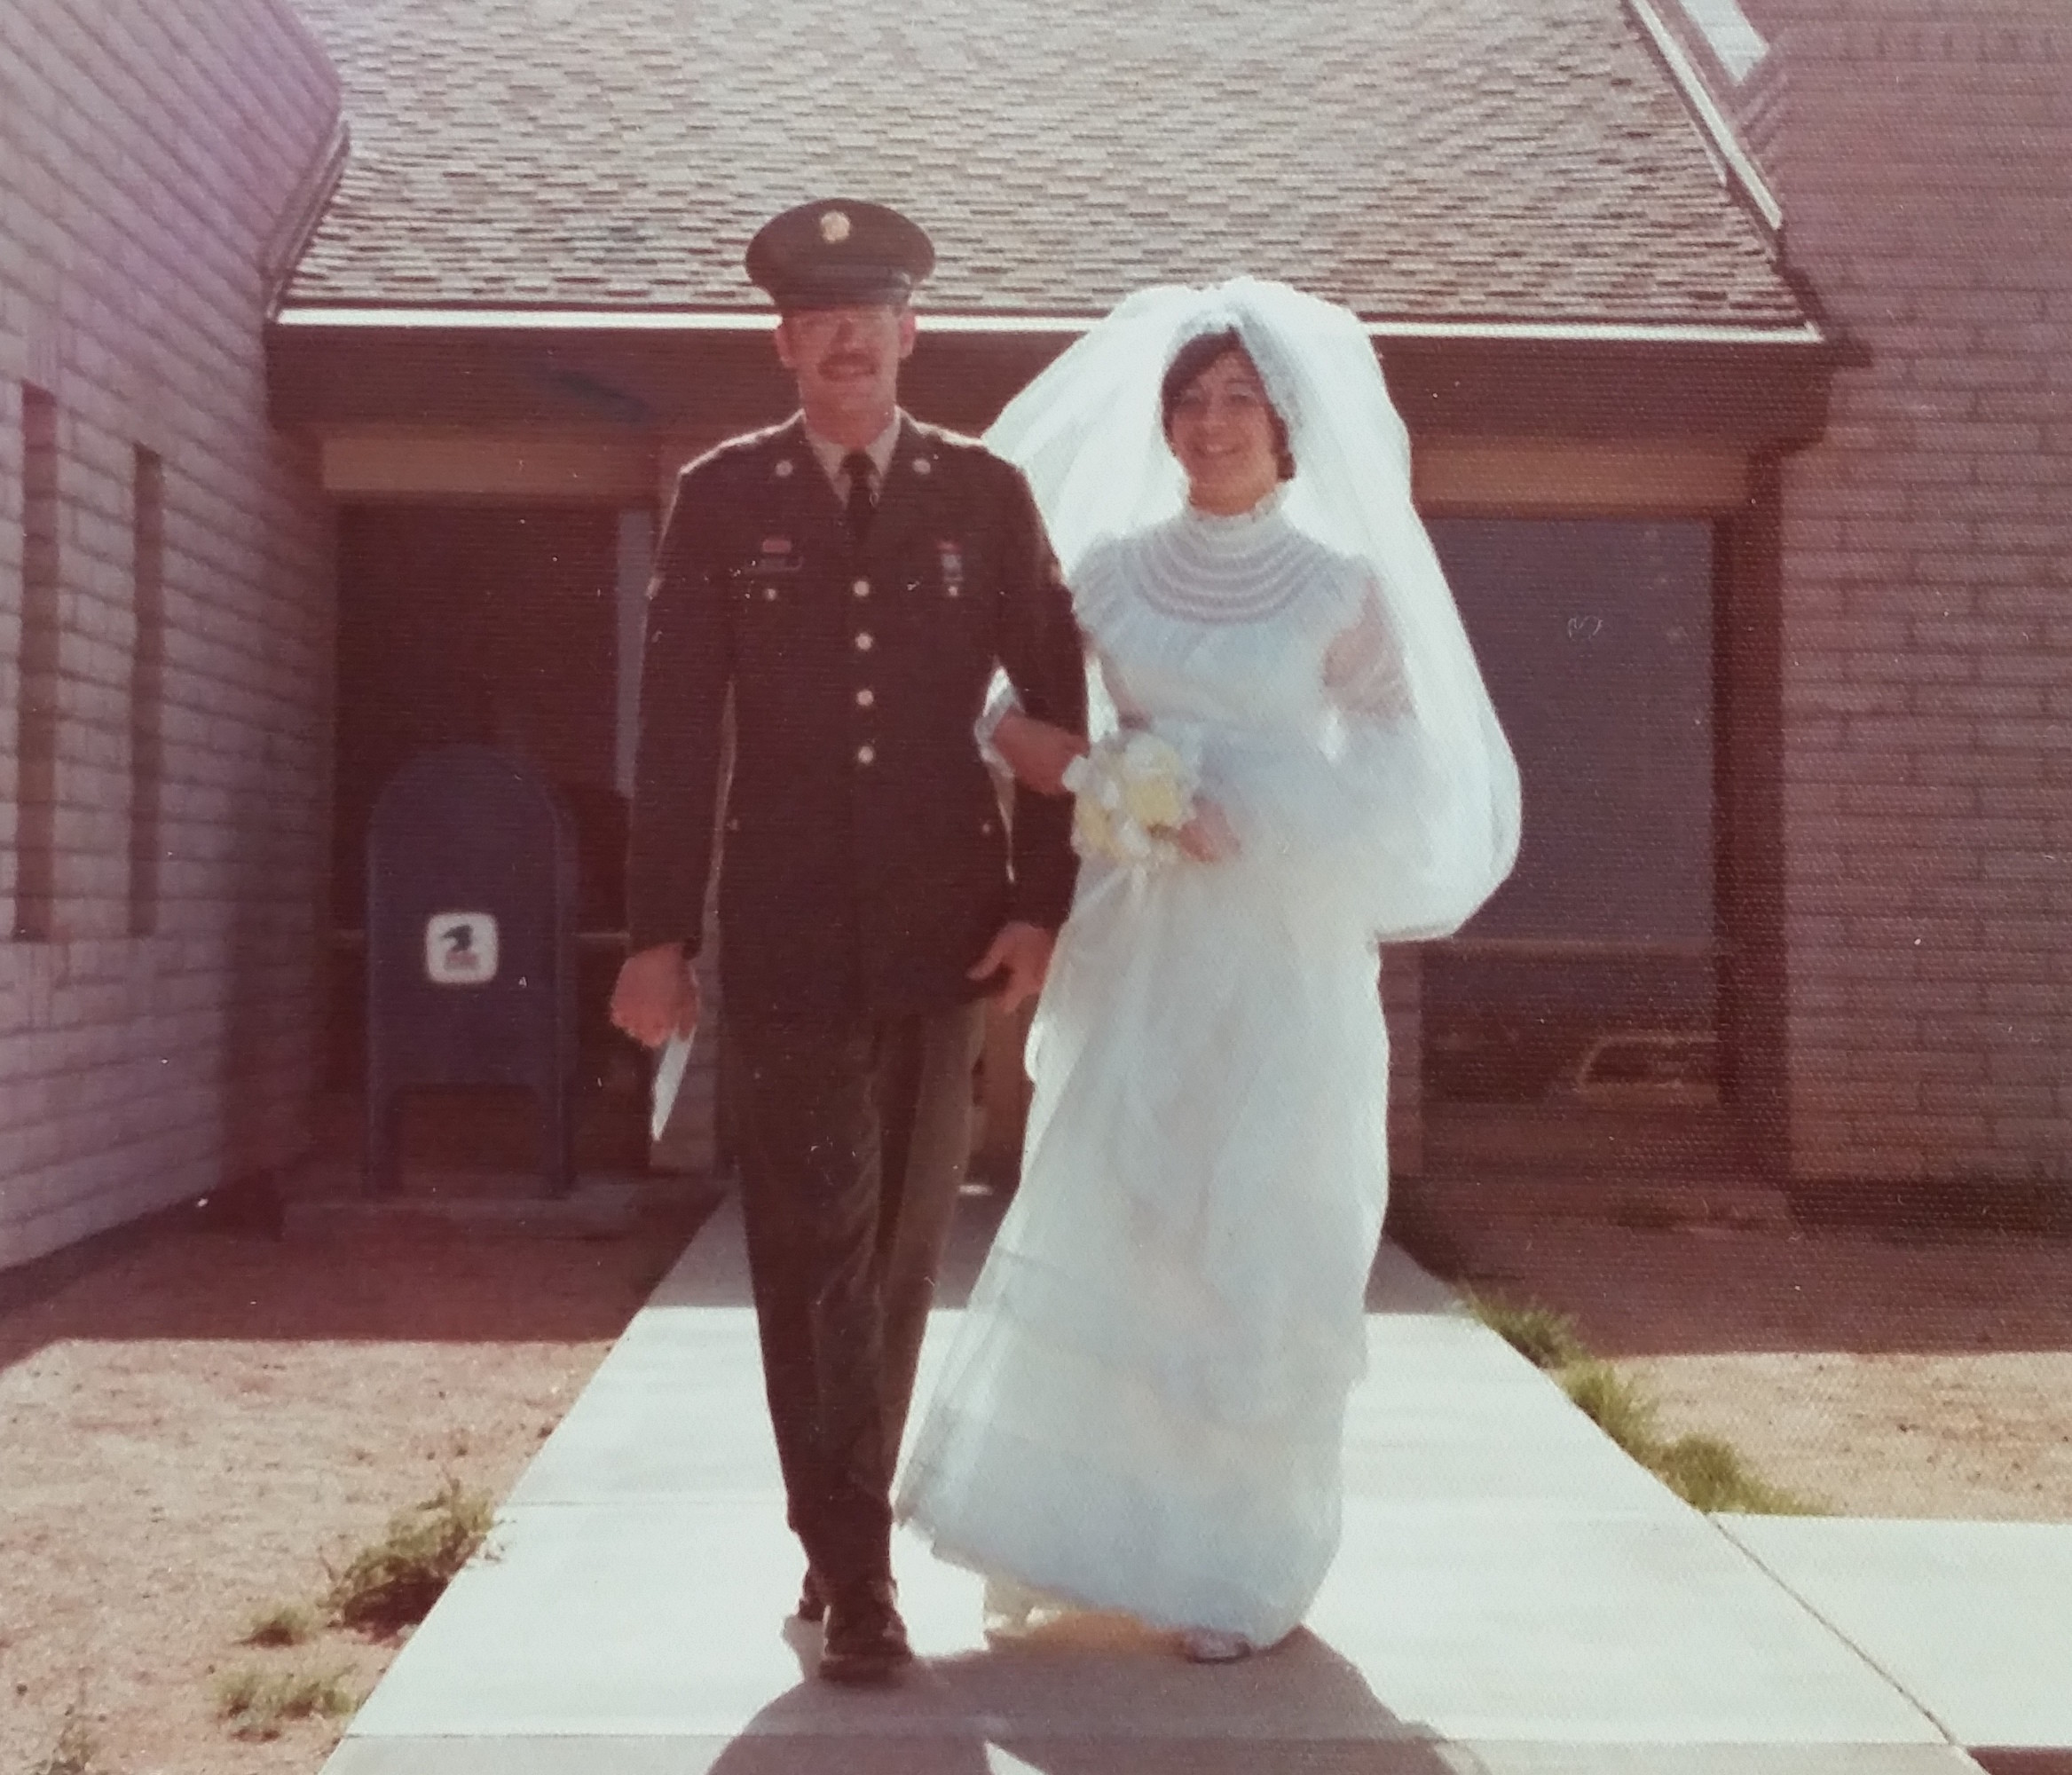 Mill Mathis and Stephanie Rossetti wed at a town hall in Cochise County, Ariz.. in May 1975 while they were stationed at Fort Huachuca.